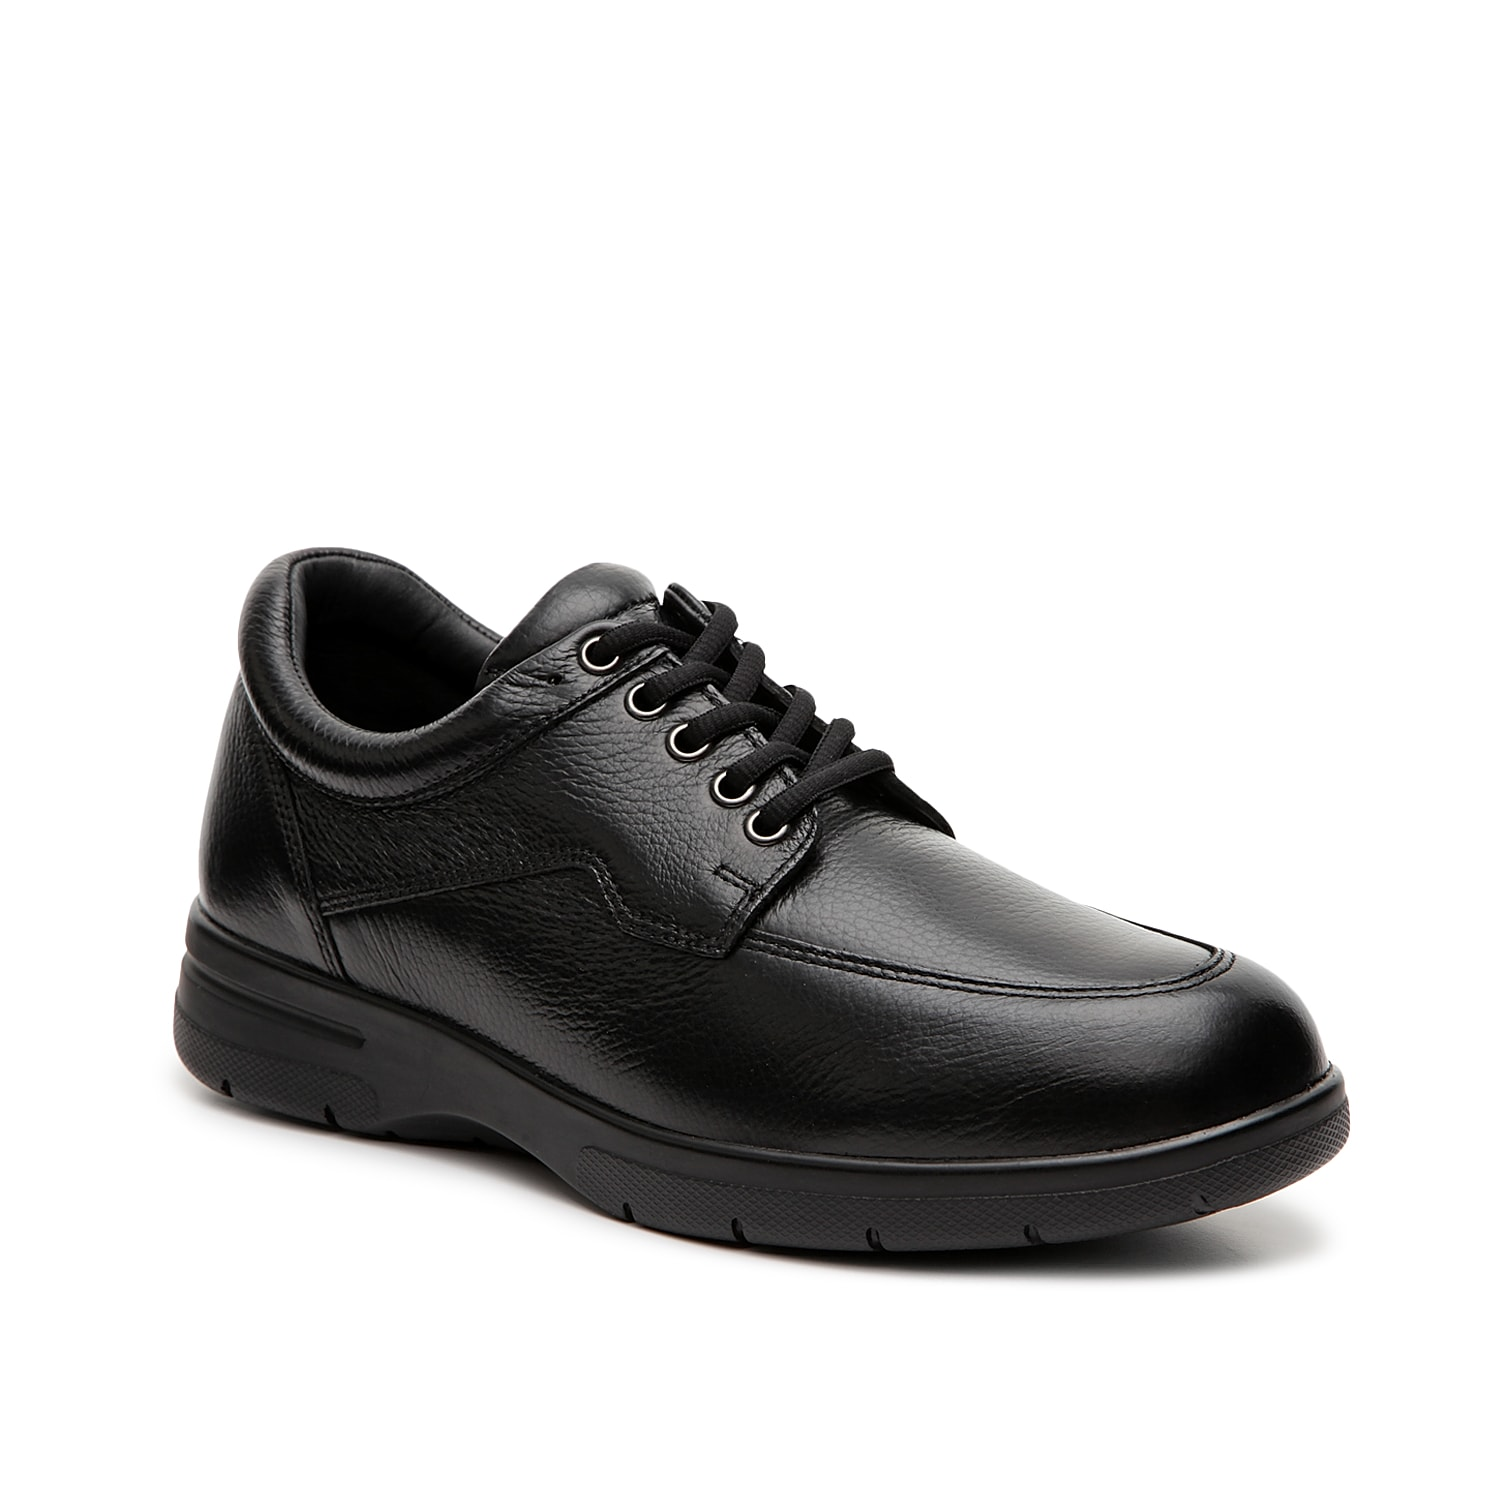 Look your best while staying comfy with the Walker II oxford from Drew. This pair is made fom supple leather that lasts and is finished with a removable cushioned insole for a custom fit.